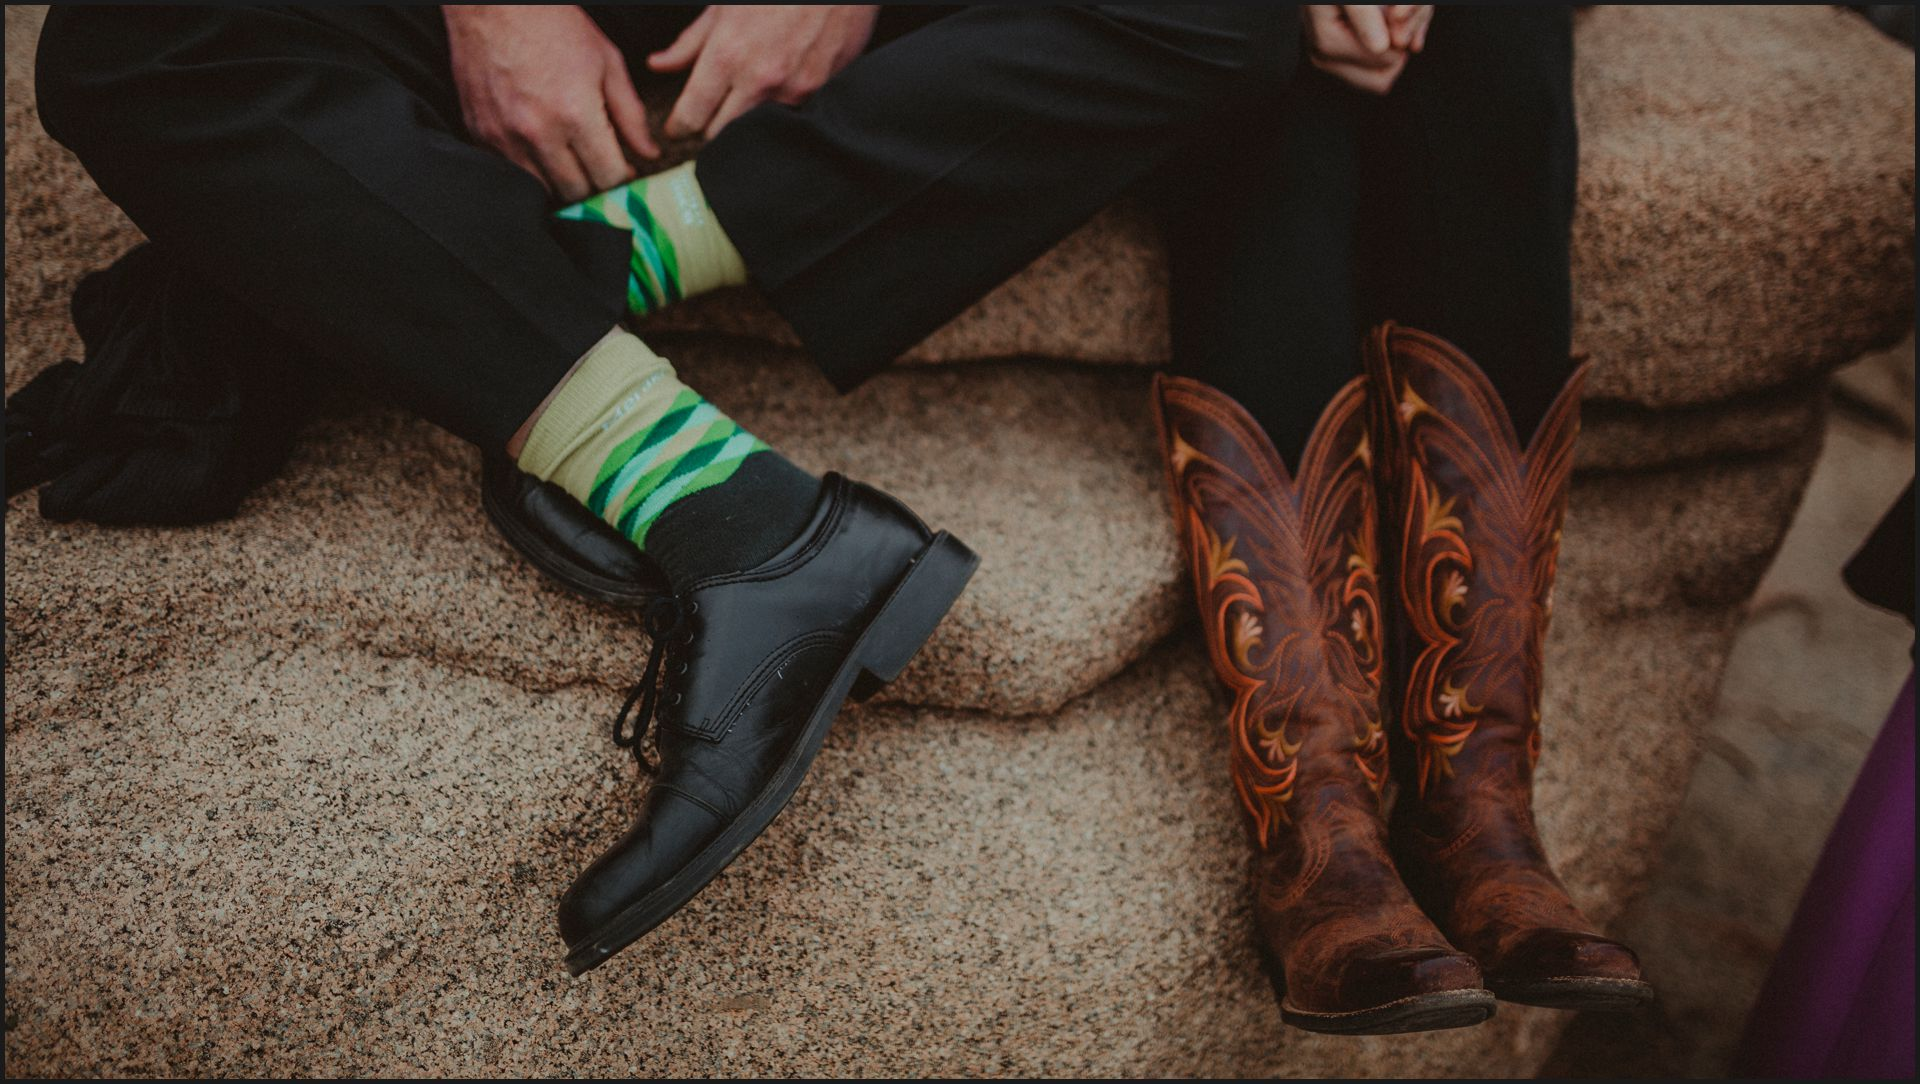 wedding guests, maine wedding, wedding, shoes, details, candid, funny moment, funny socks